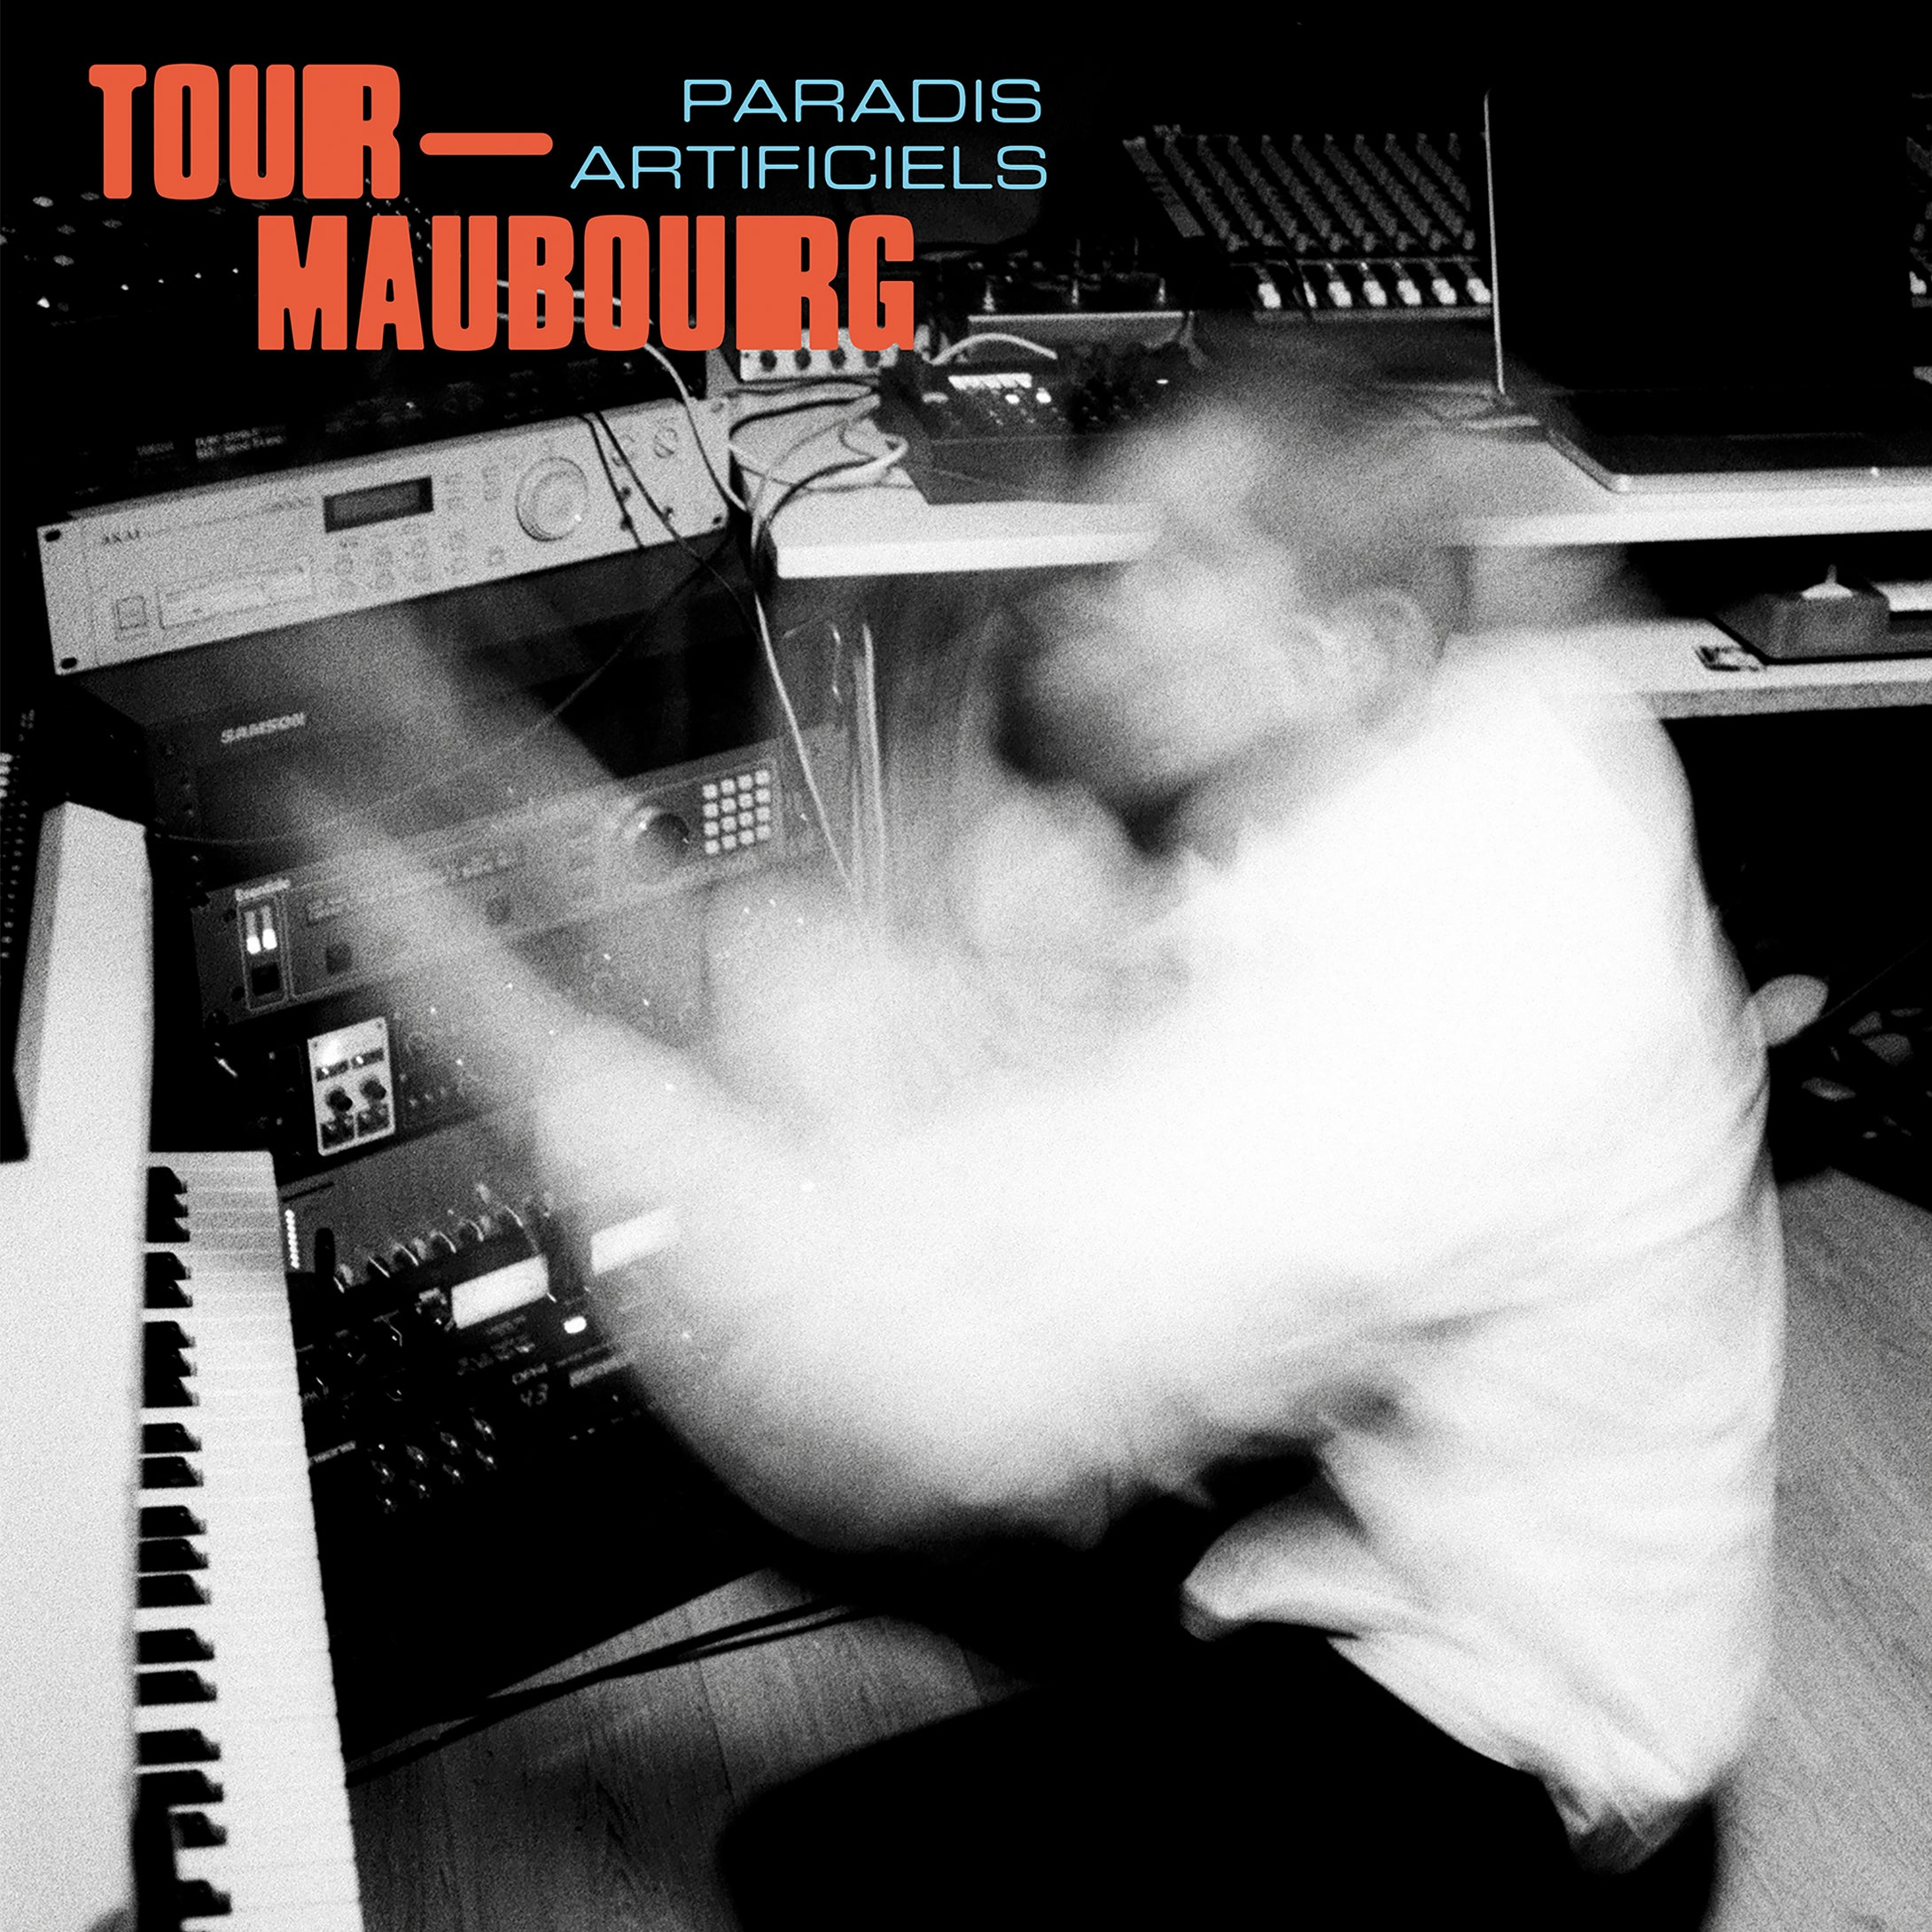 Tour Maubourg - Paradis Artificiels LP PNLP001 front cover